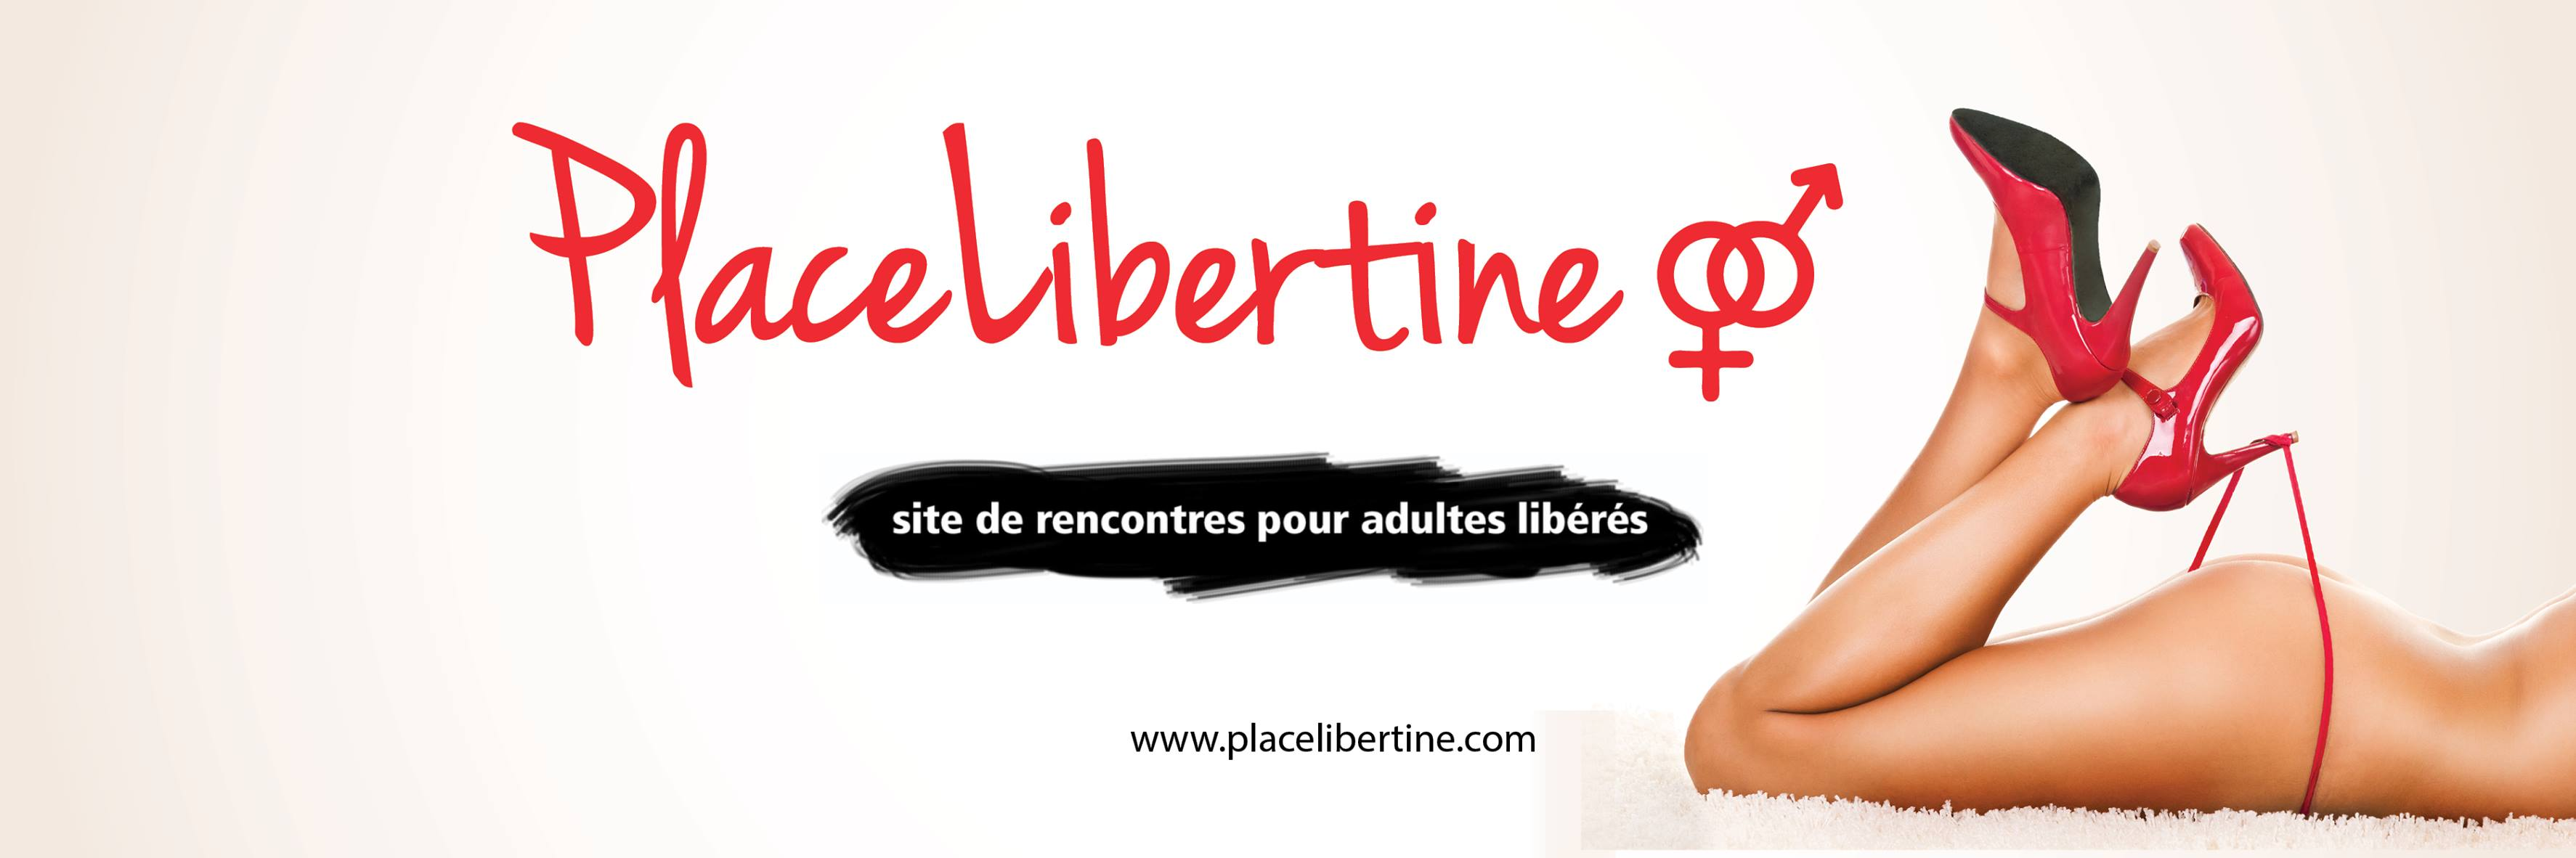 placekibertine si de rencontre